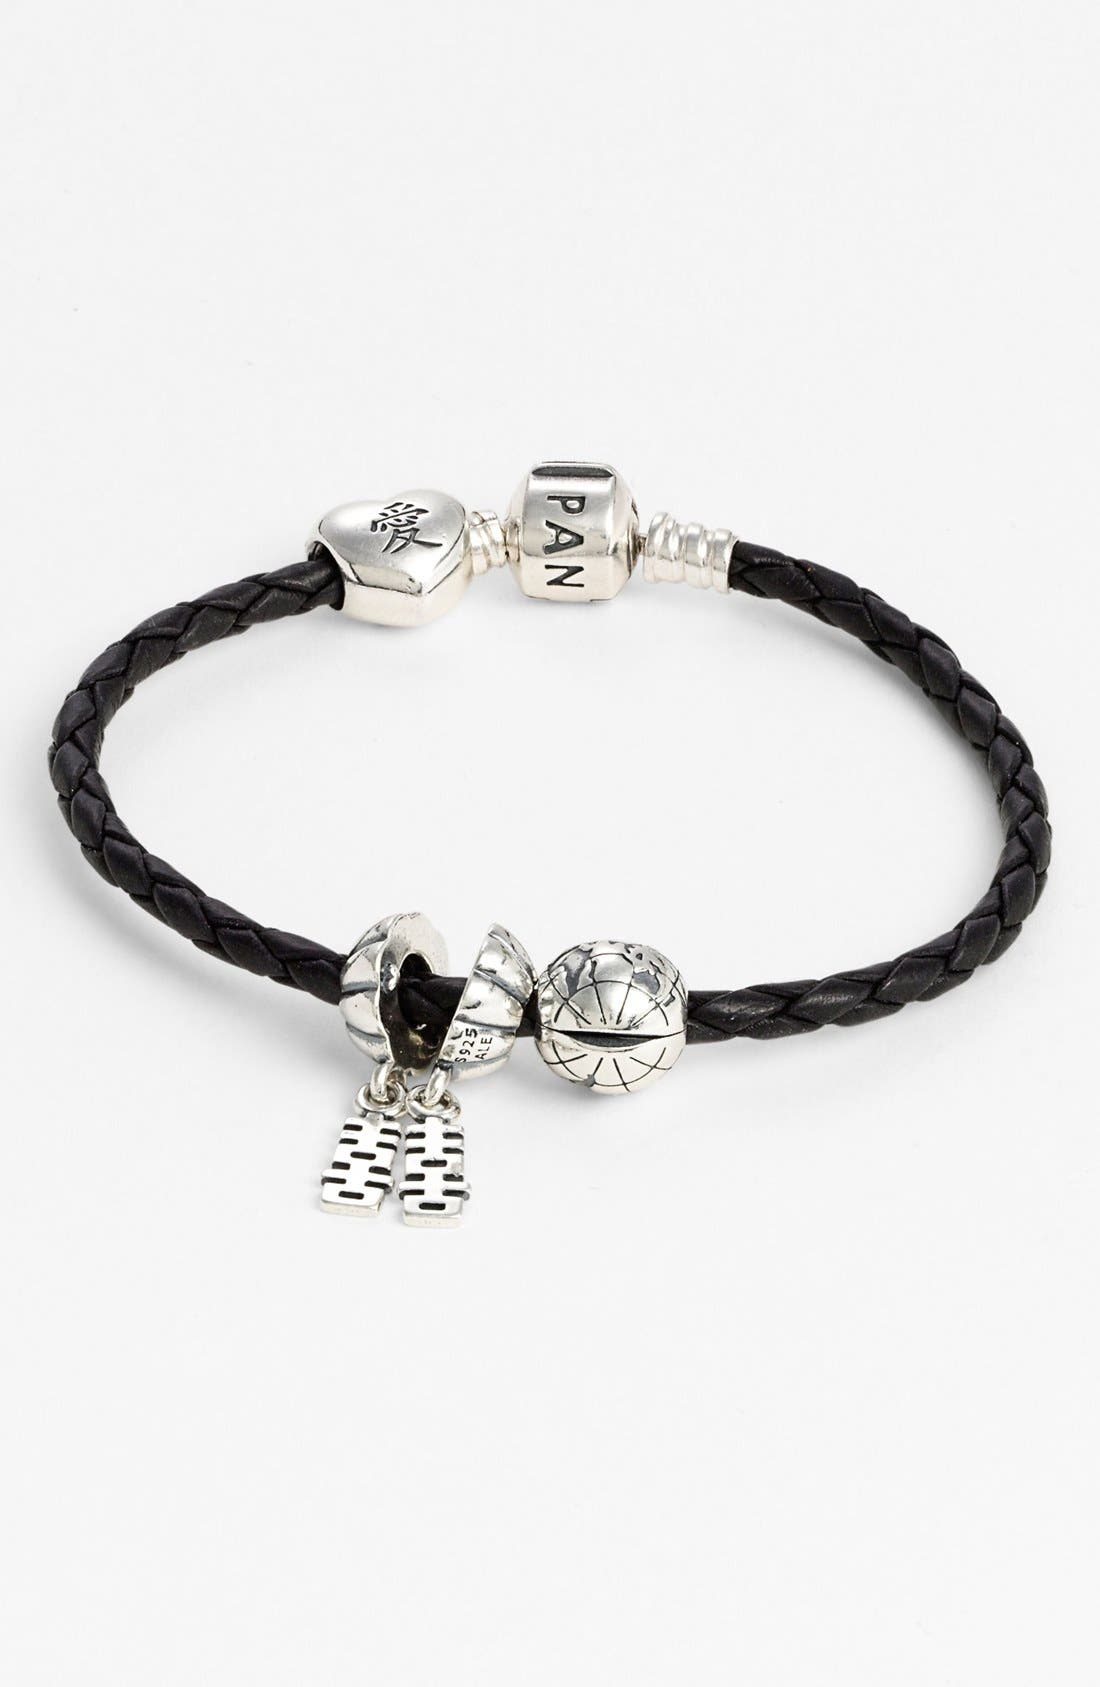 Main Image - PANDORA Woven Leather Charm Bracelet